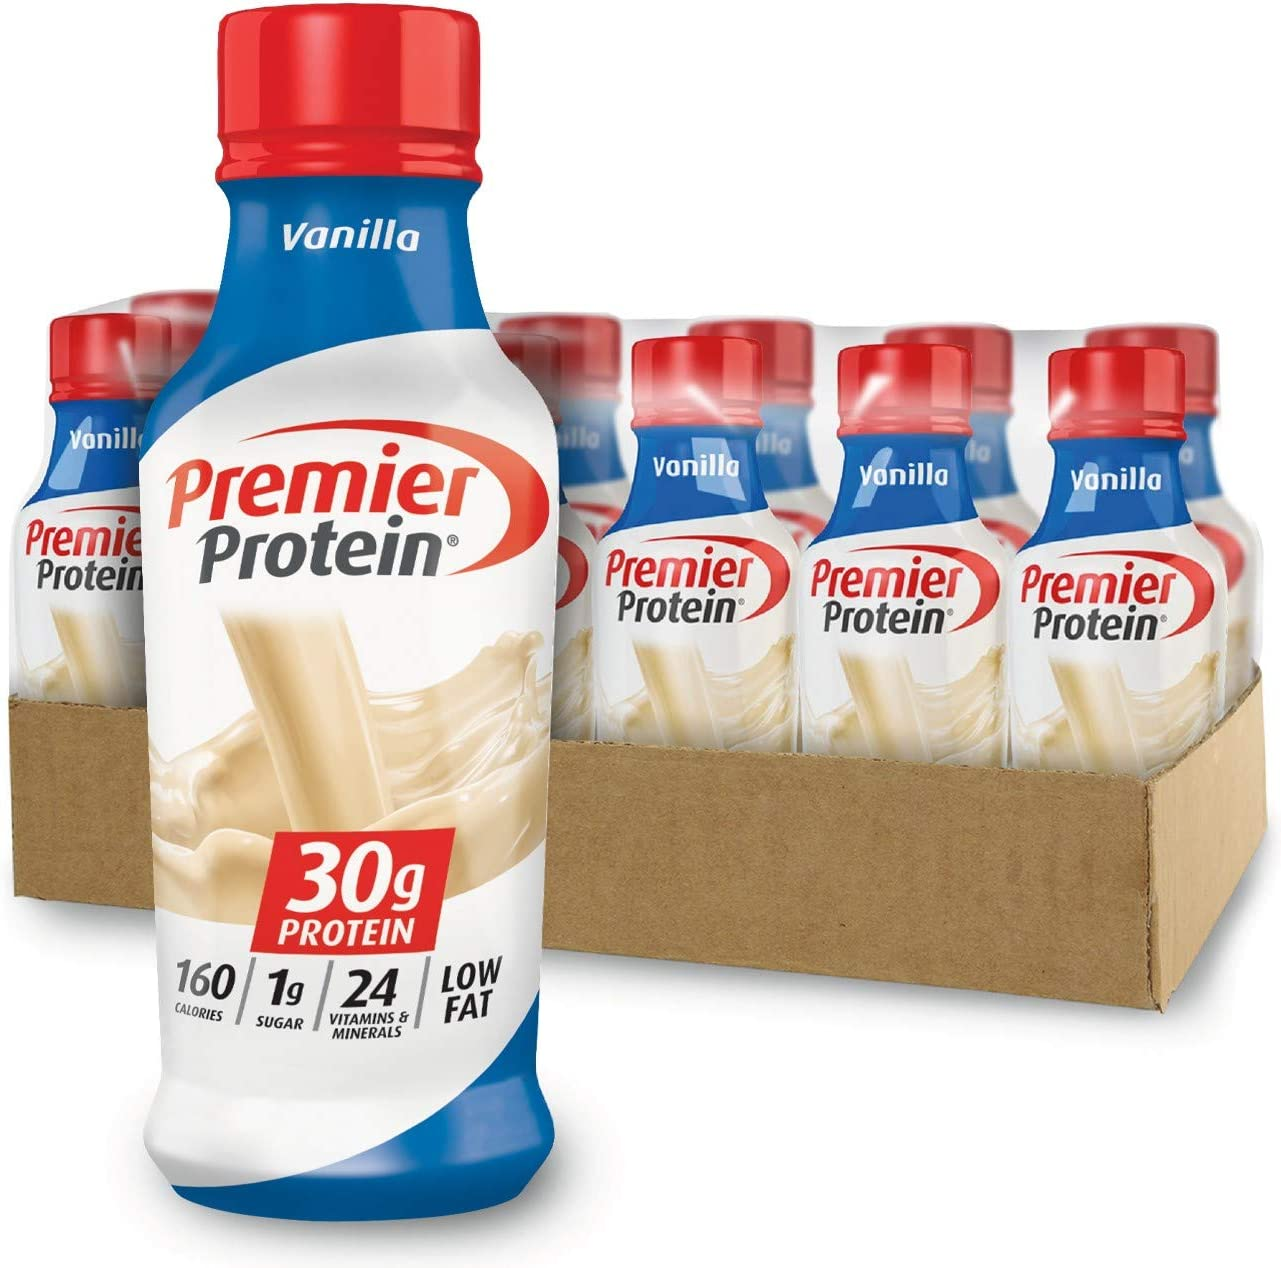 Premier Protein 30g Protein Shake, Chocolate, 14 Fl Oz (Pack of 12) bottle: Health & Personal Care